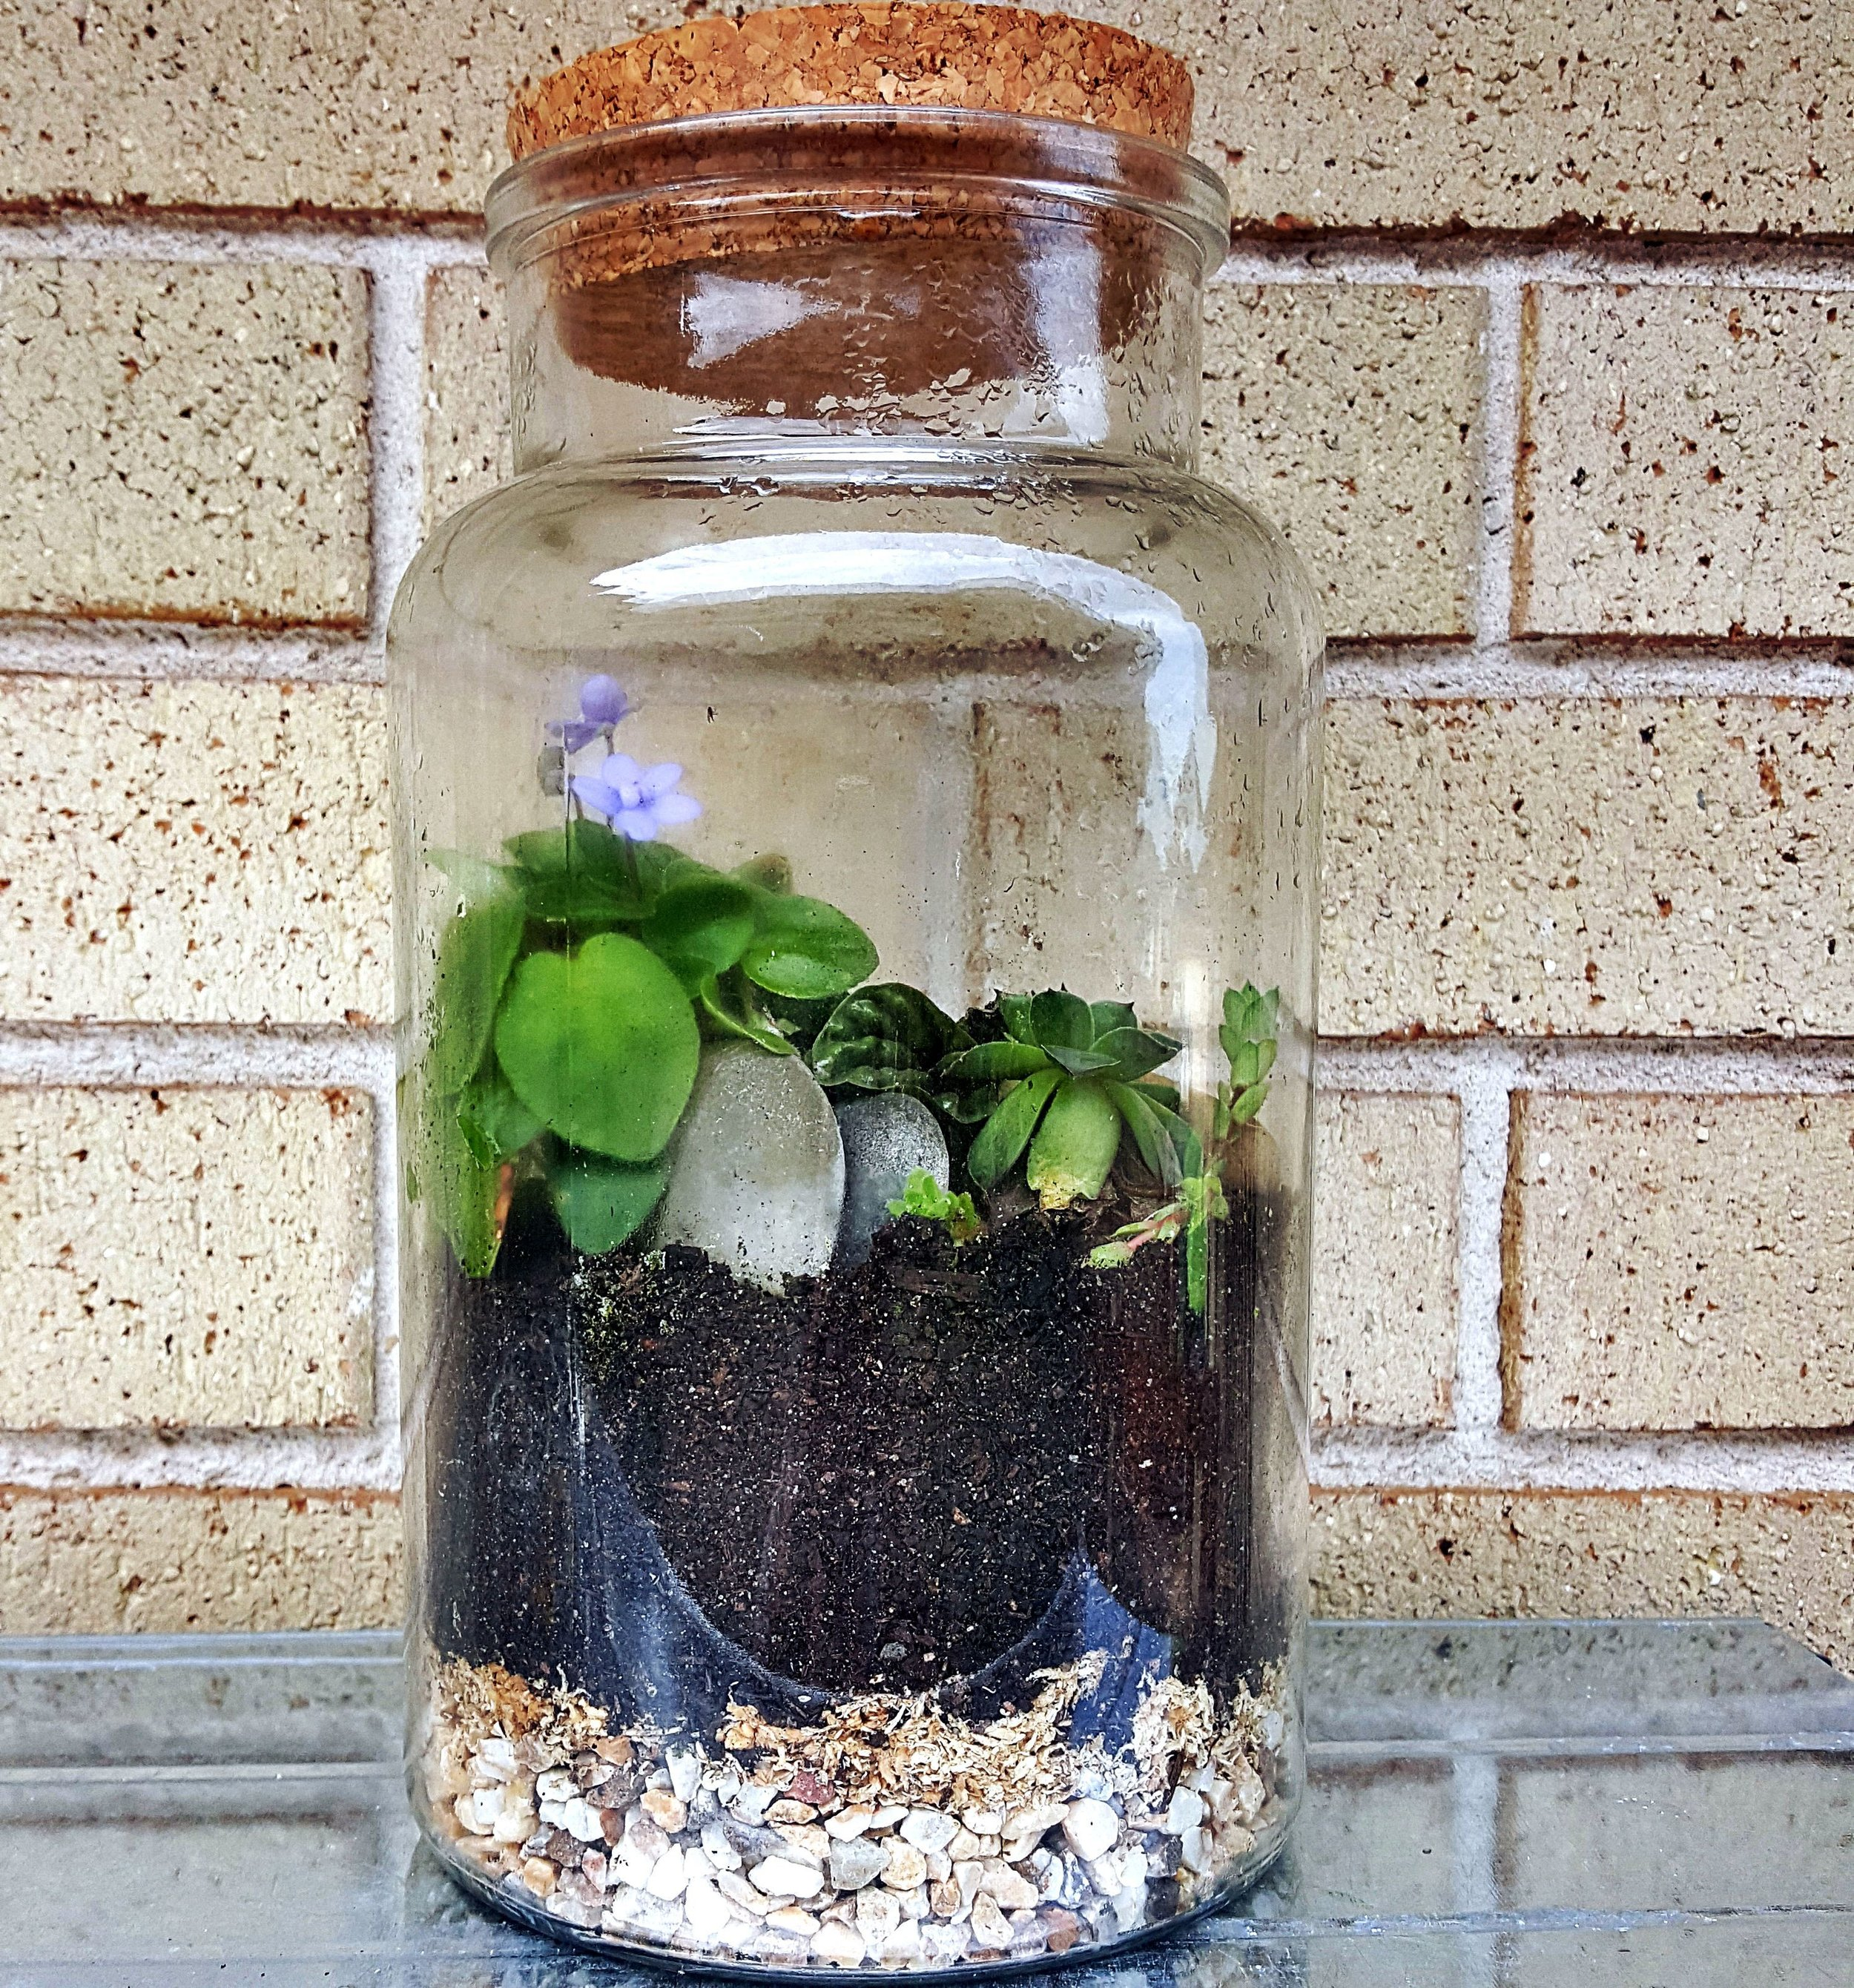 TERRARIUM - Light: Place your terrarium in a bright, warm and sheltered spot. Ideally, a metre or two away from a north-facing window. If you notice the soil drying out or the leaves looking scorched, consider moving it to a cooler spot. Water: Your terrarium is mostly made up of humid-loving plants which, we monitor for a few weeks. This is to ensure it gets the best chance at life. During this time, we establish a water-cycle, creating an ecosystem within the vessel. Developing a good ecosystem means that your terrarium rarely needs to be watered. If the soil looks dry, lightly mist your terrarium. Give it a few days and mist again if required. Often, your terrarium will not need watering for months at a time, or at all.Prune: We use slow growing plants to create your terrarium however like us, all plants are different, and some may decide to have a sudden growth spurt. Don't panic though, just open up your terrarium and give it a trim. It is also important to discard of any dead or decaying leaves. This will help keep your terrarium clean and healthy.